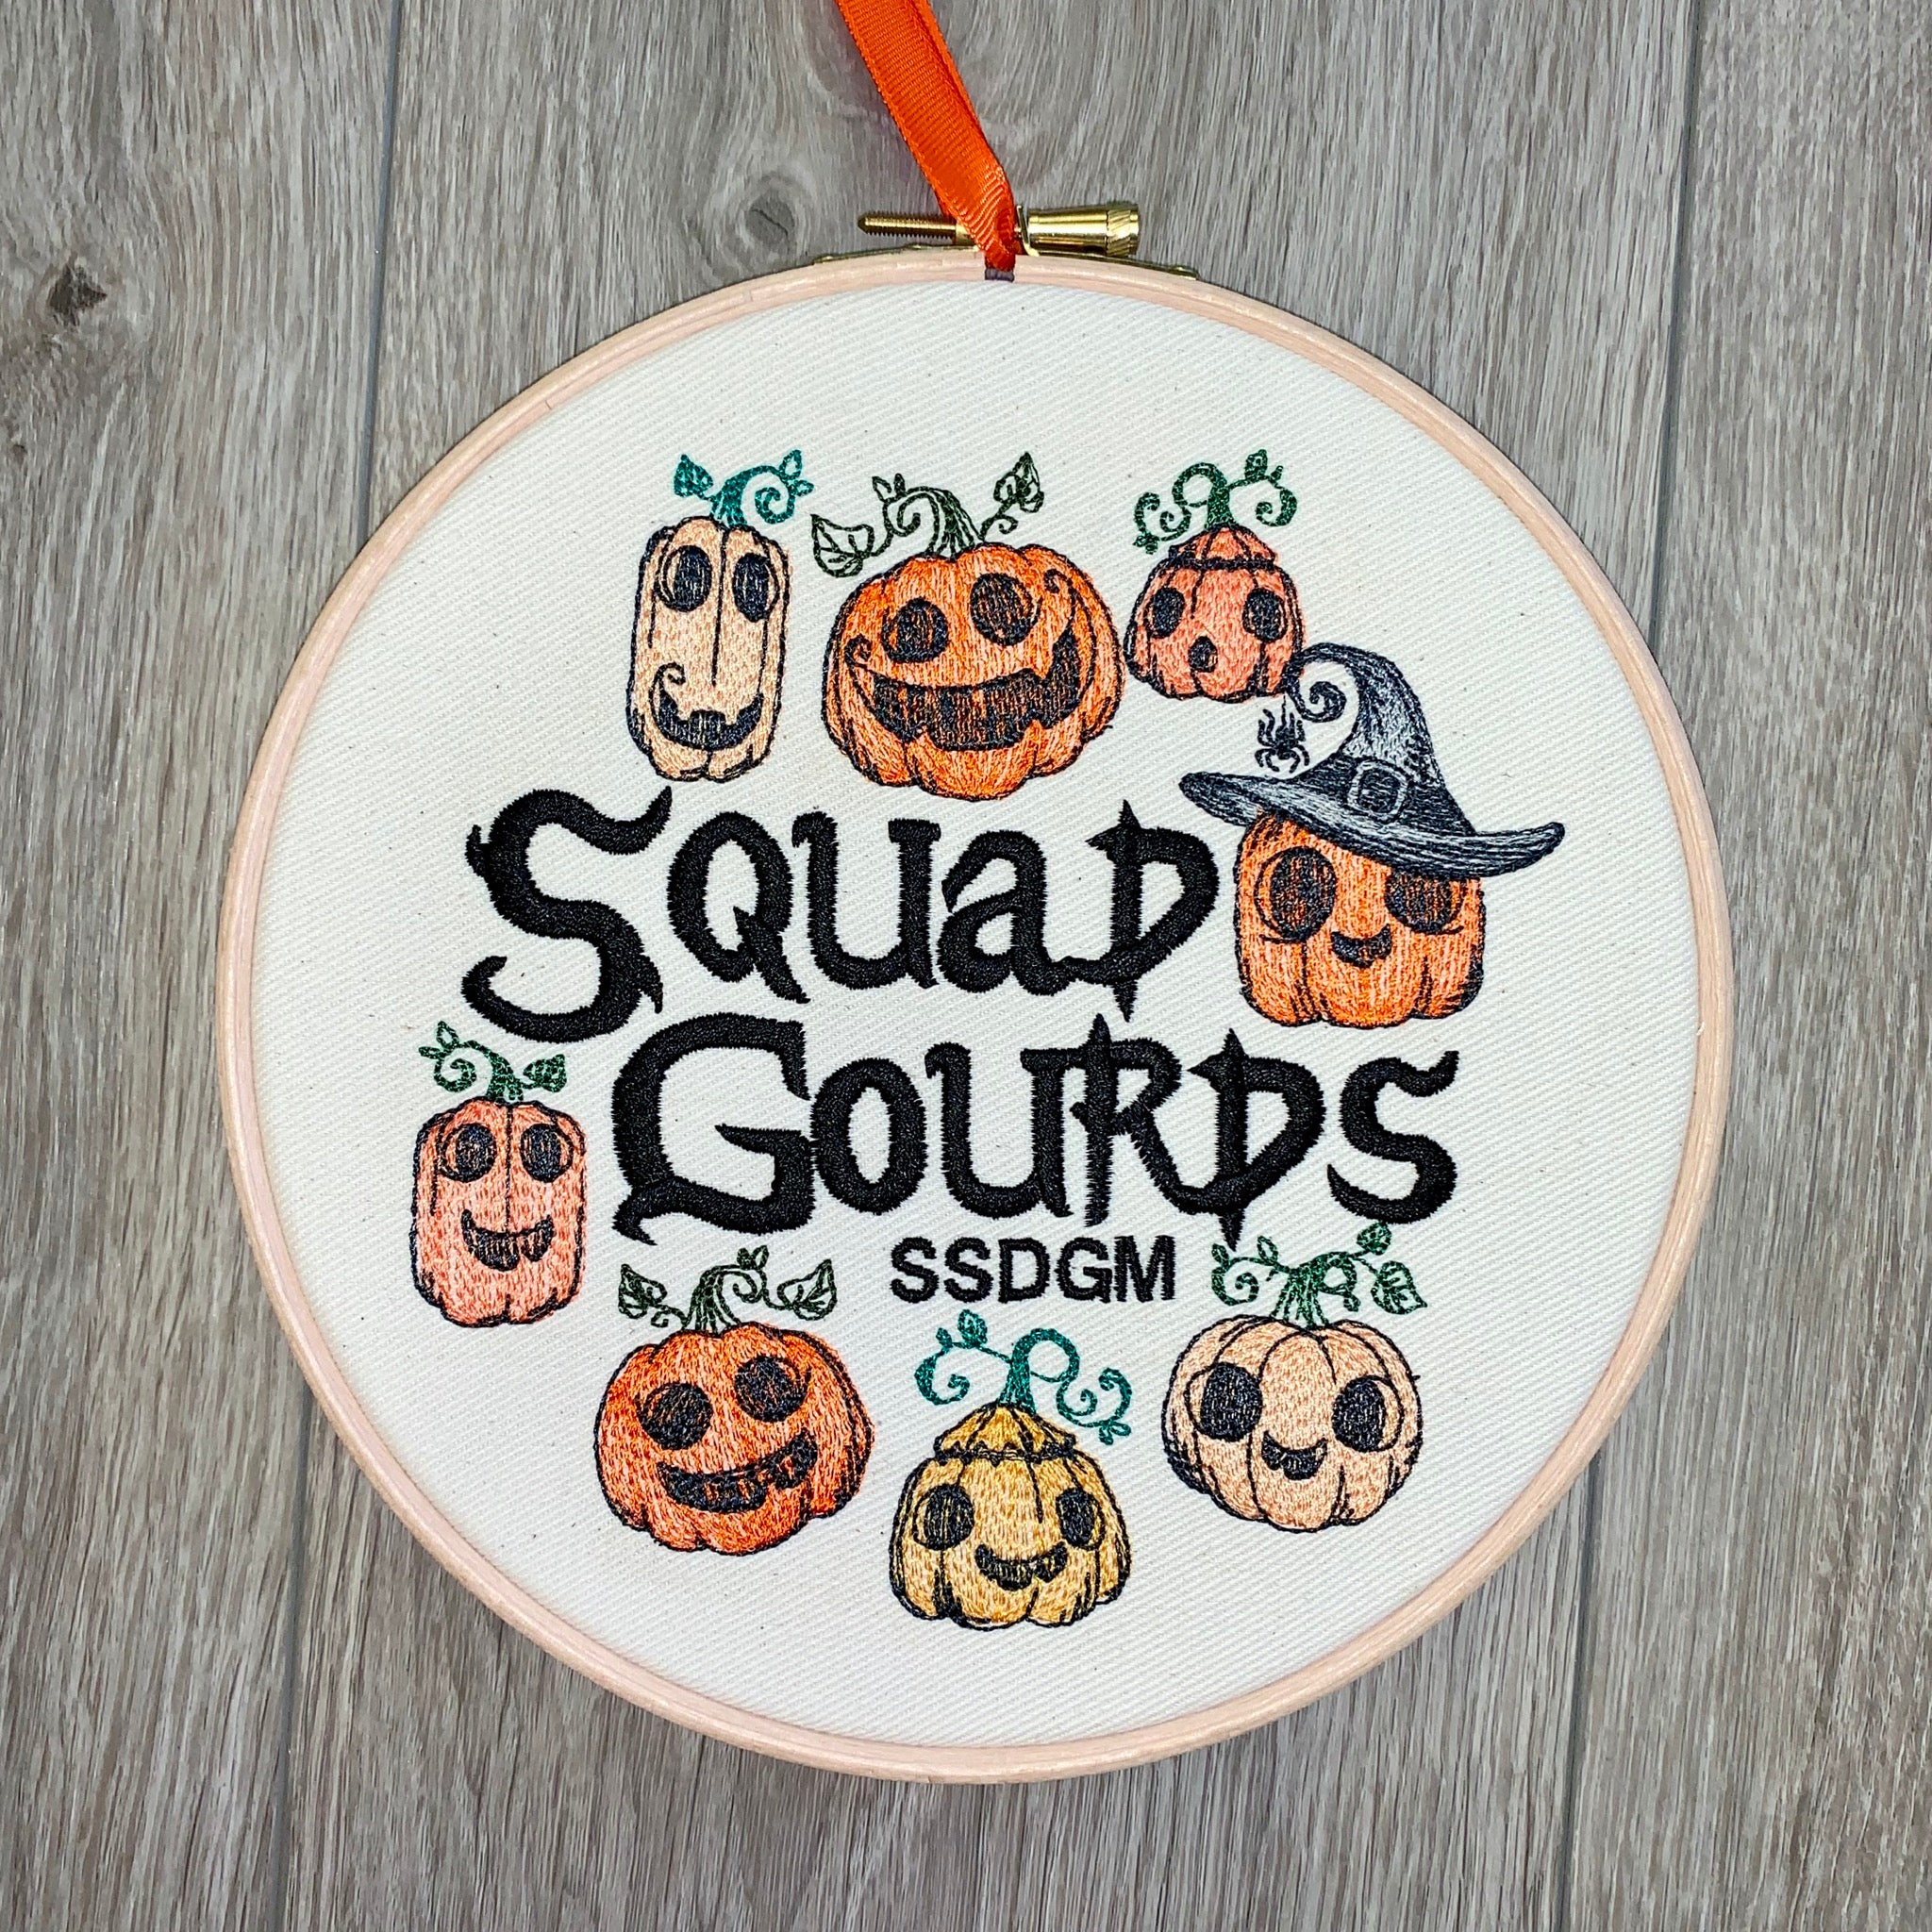 Squad gourds SSDGM Embroidery hoop art